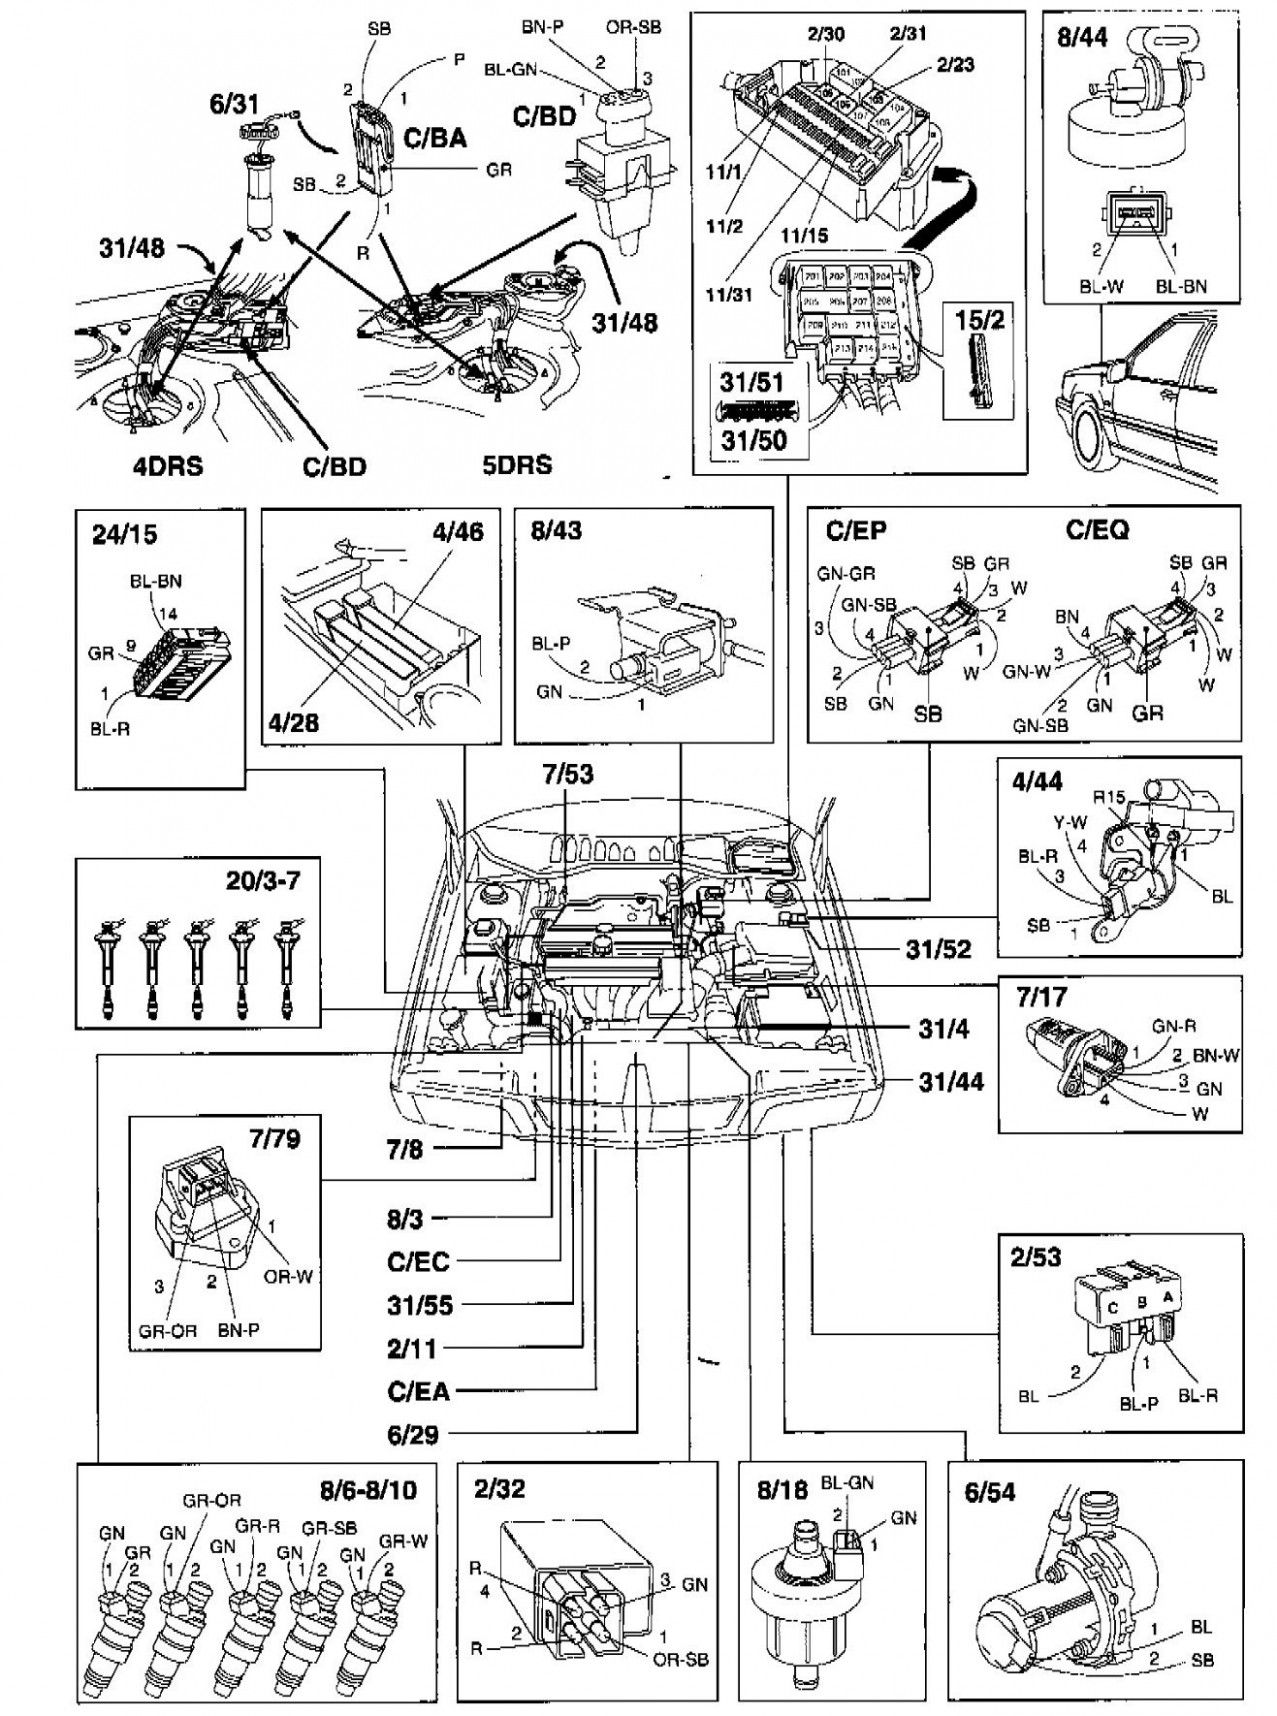 Volvo S5 T5 Engine Diagram Volvo S60 Volvo Diagram